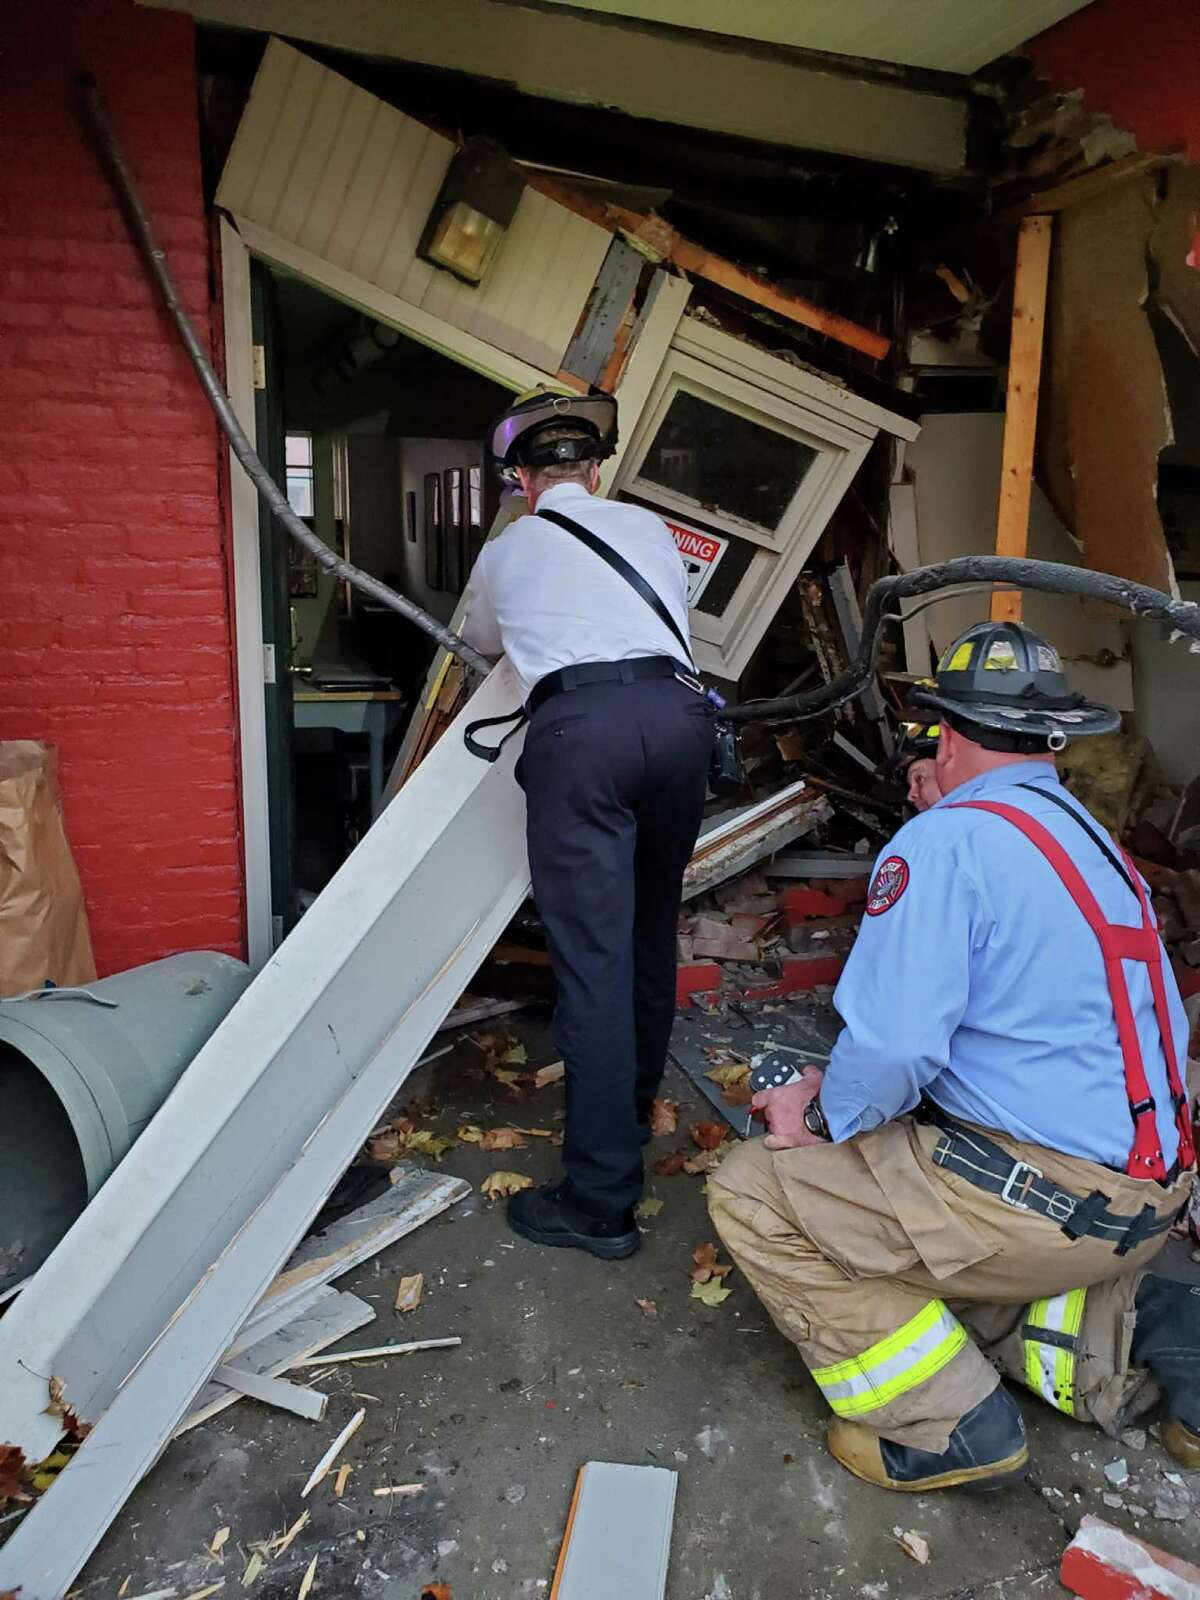 Troy firefighters examine the damage at the rear of the Kate Mullany National Historic Site at 350 Eighth St., Troy, N.Y. on Tuesday Nov. 10, 2020 after a vehicle crashed into the building.